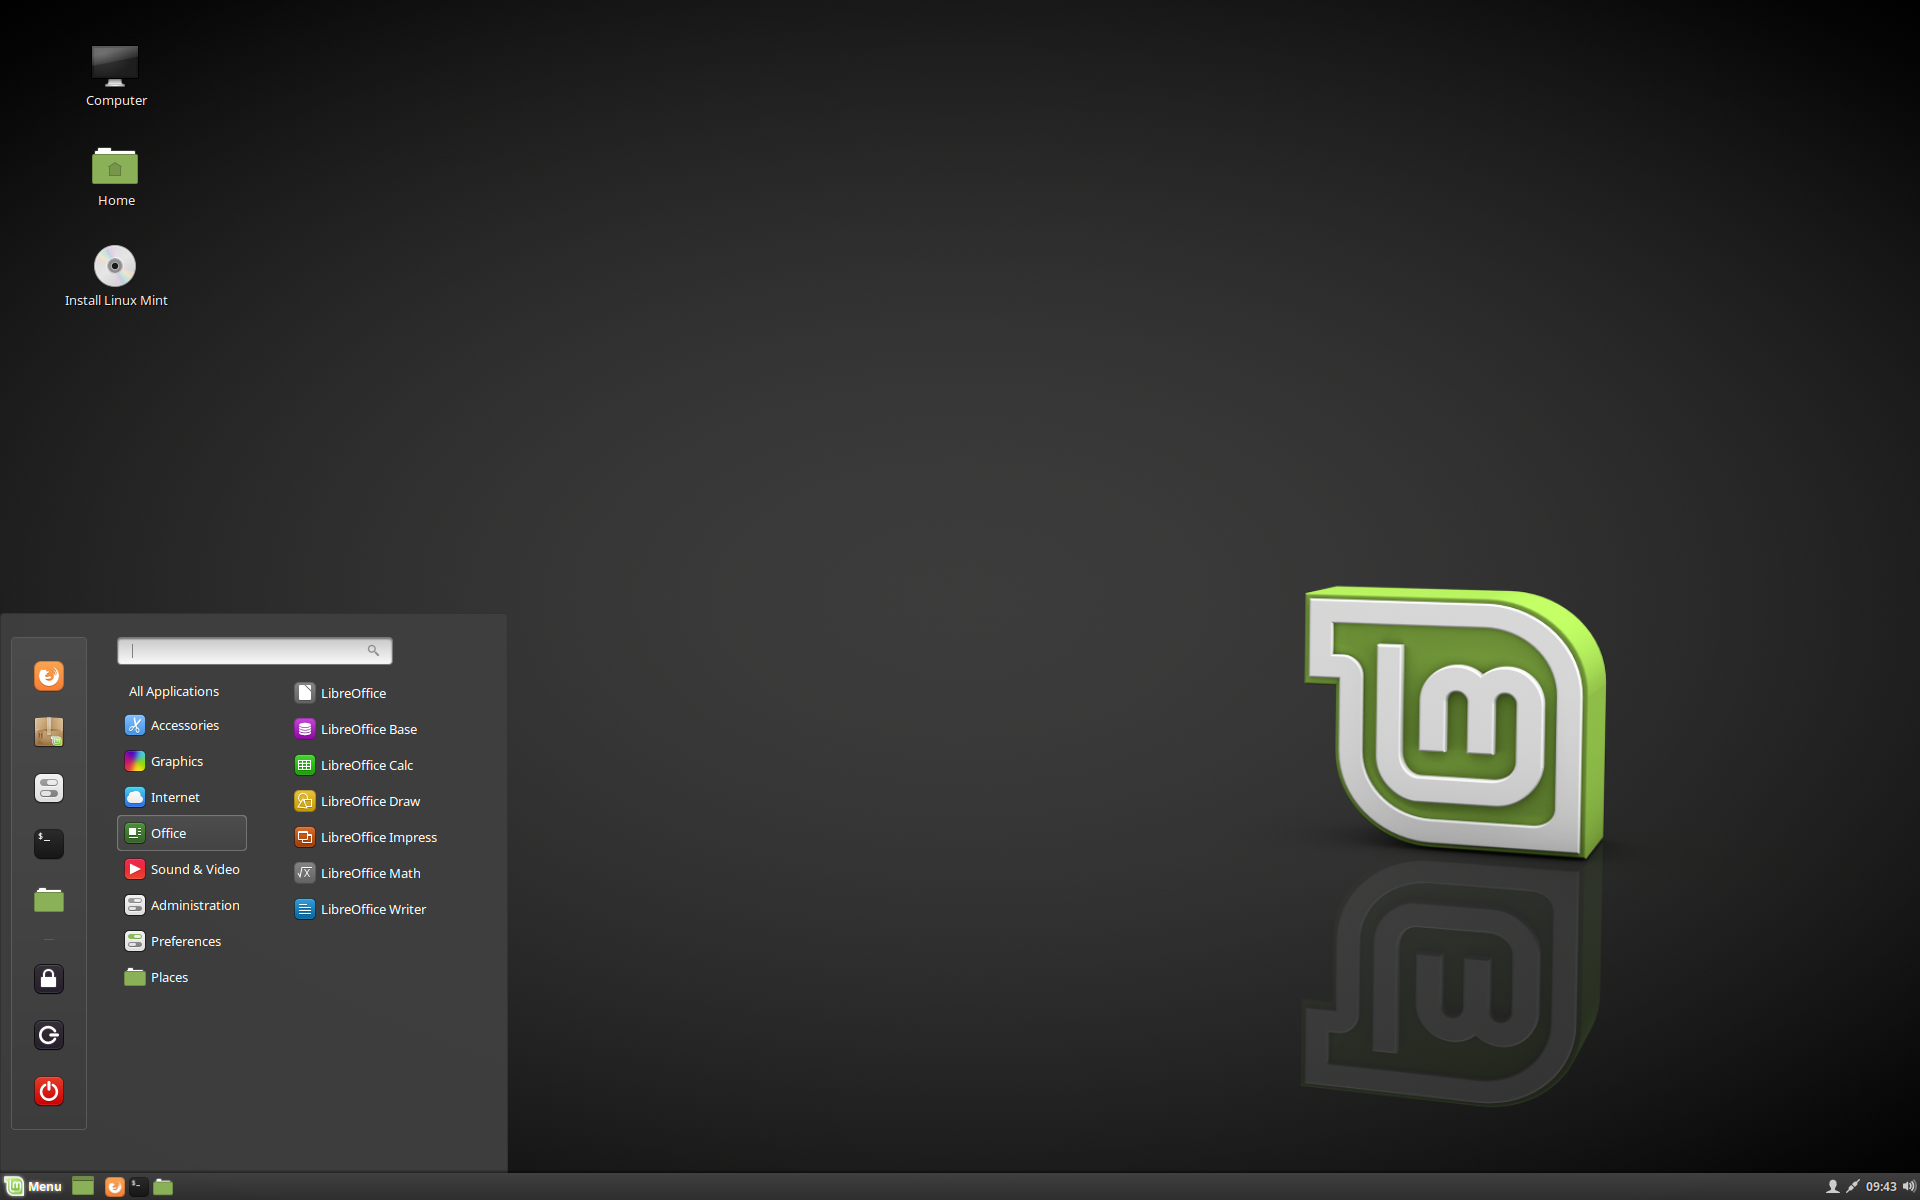 Install Linux Mint Linux Mint Installation Guide Documentation